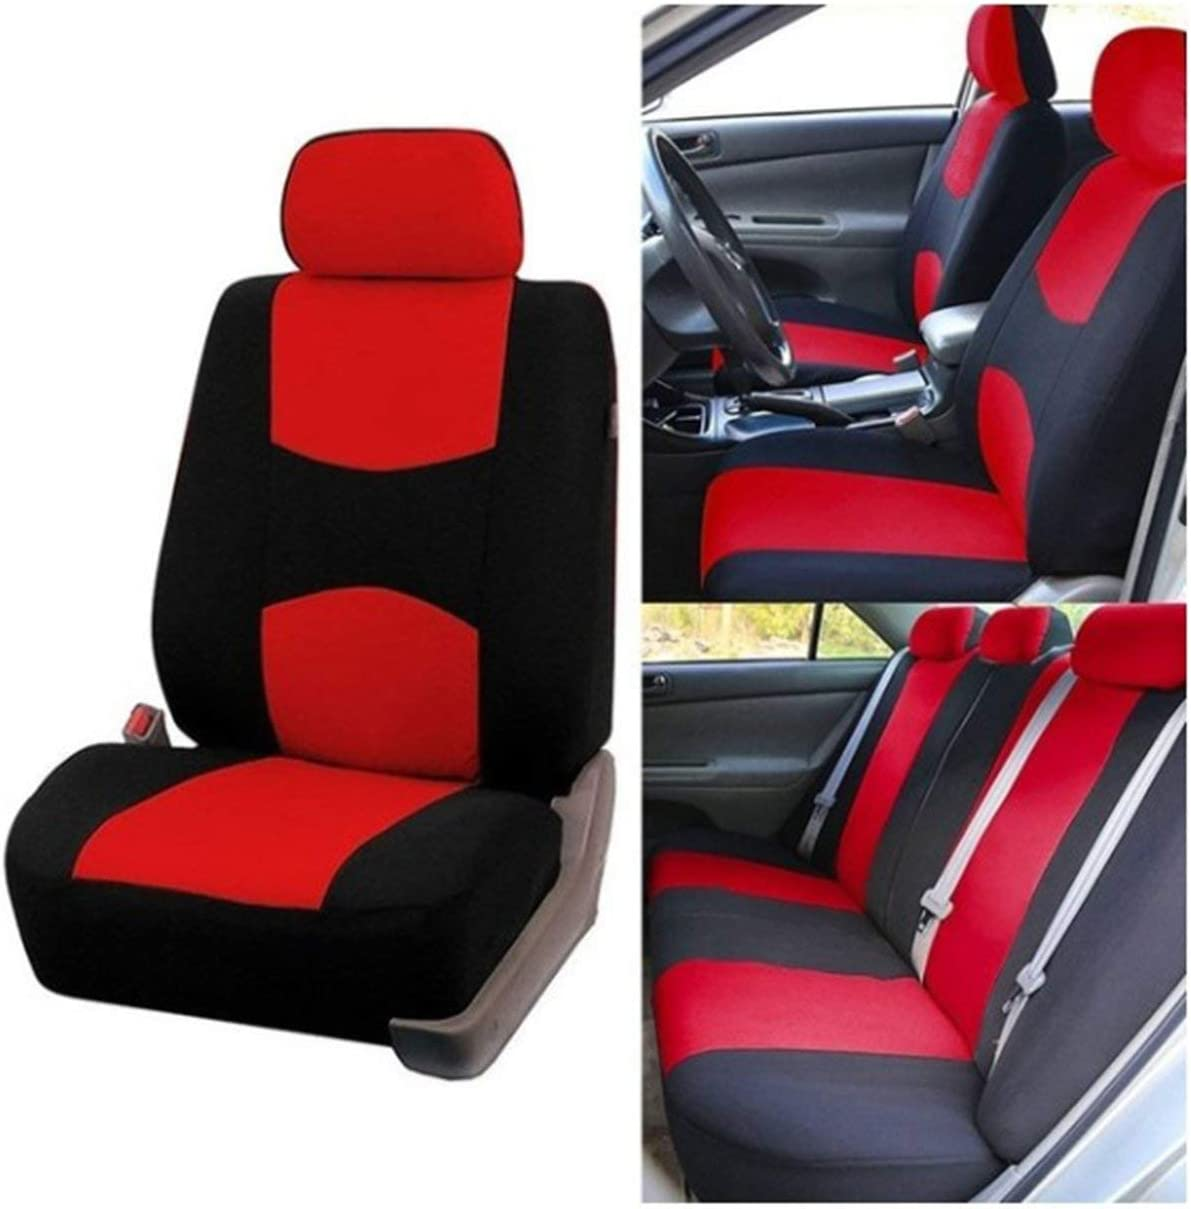 B Type Full Car Seat Cover Universal Fit Interior Accessories Car Styling